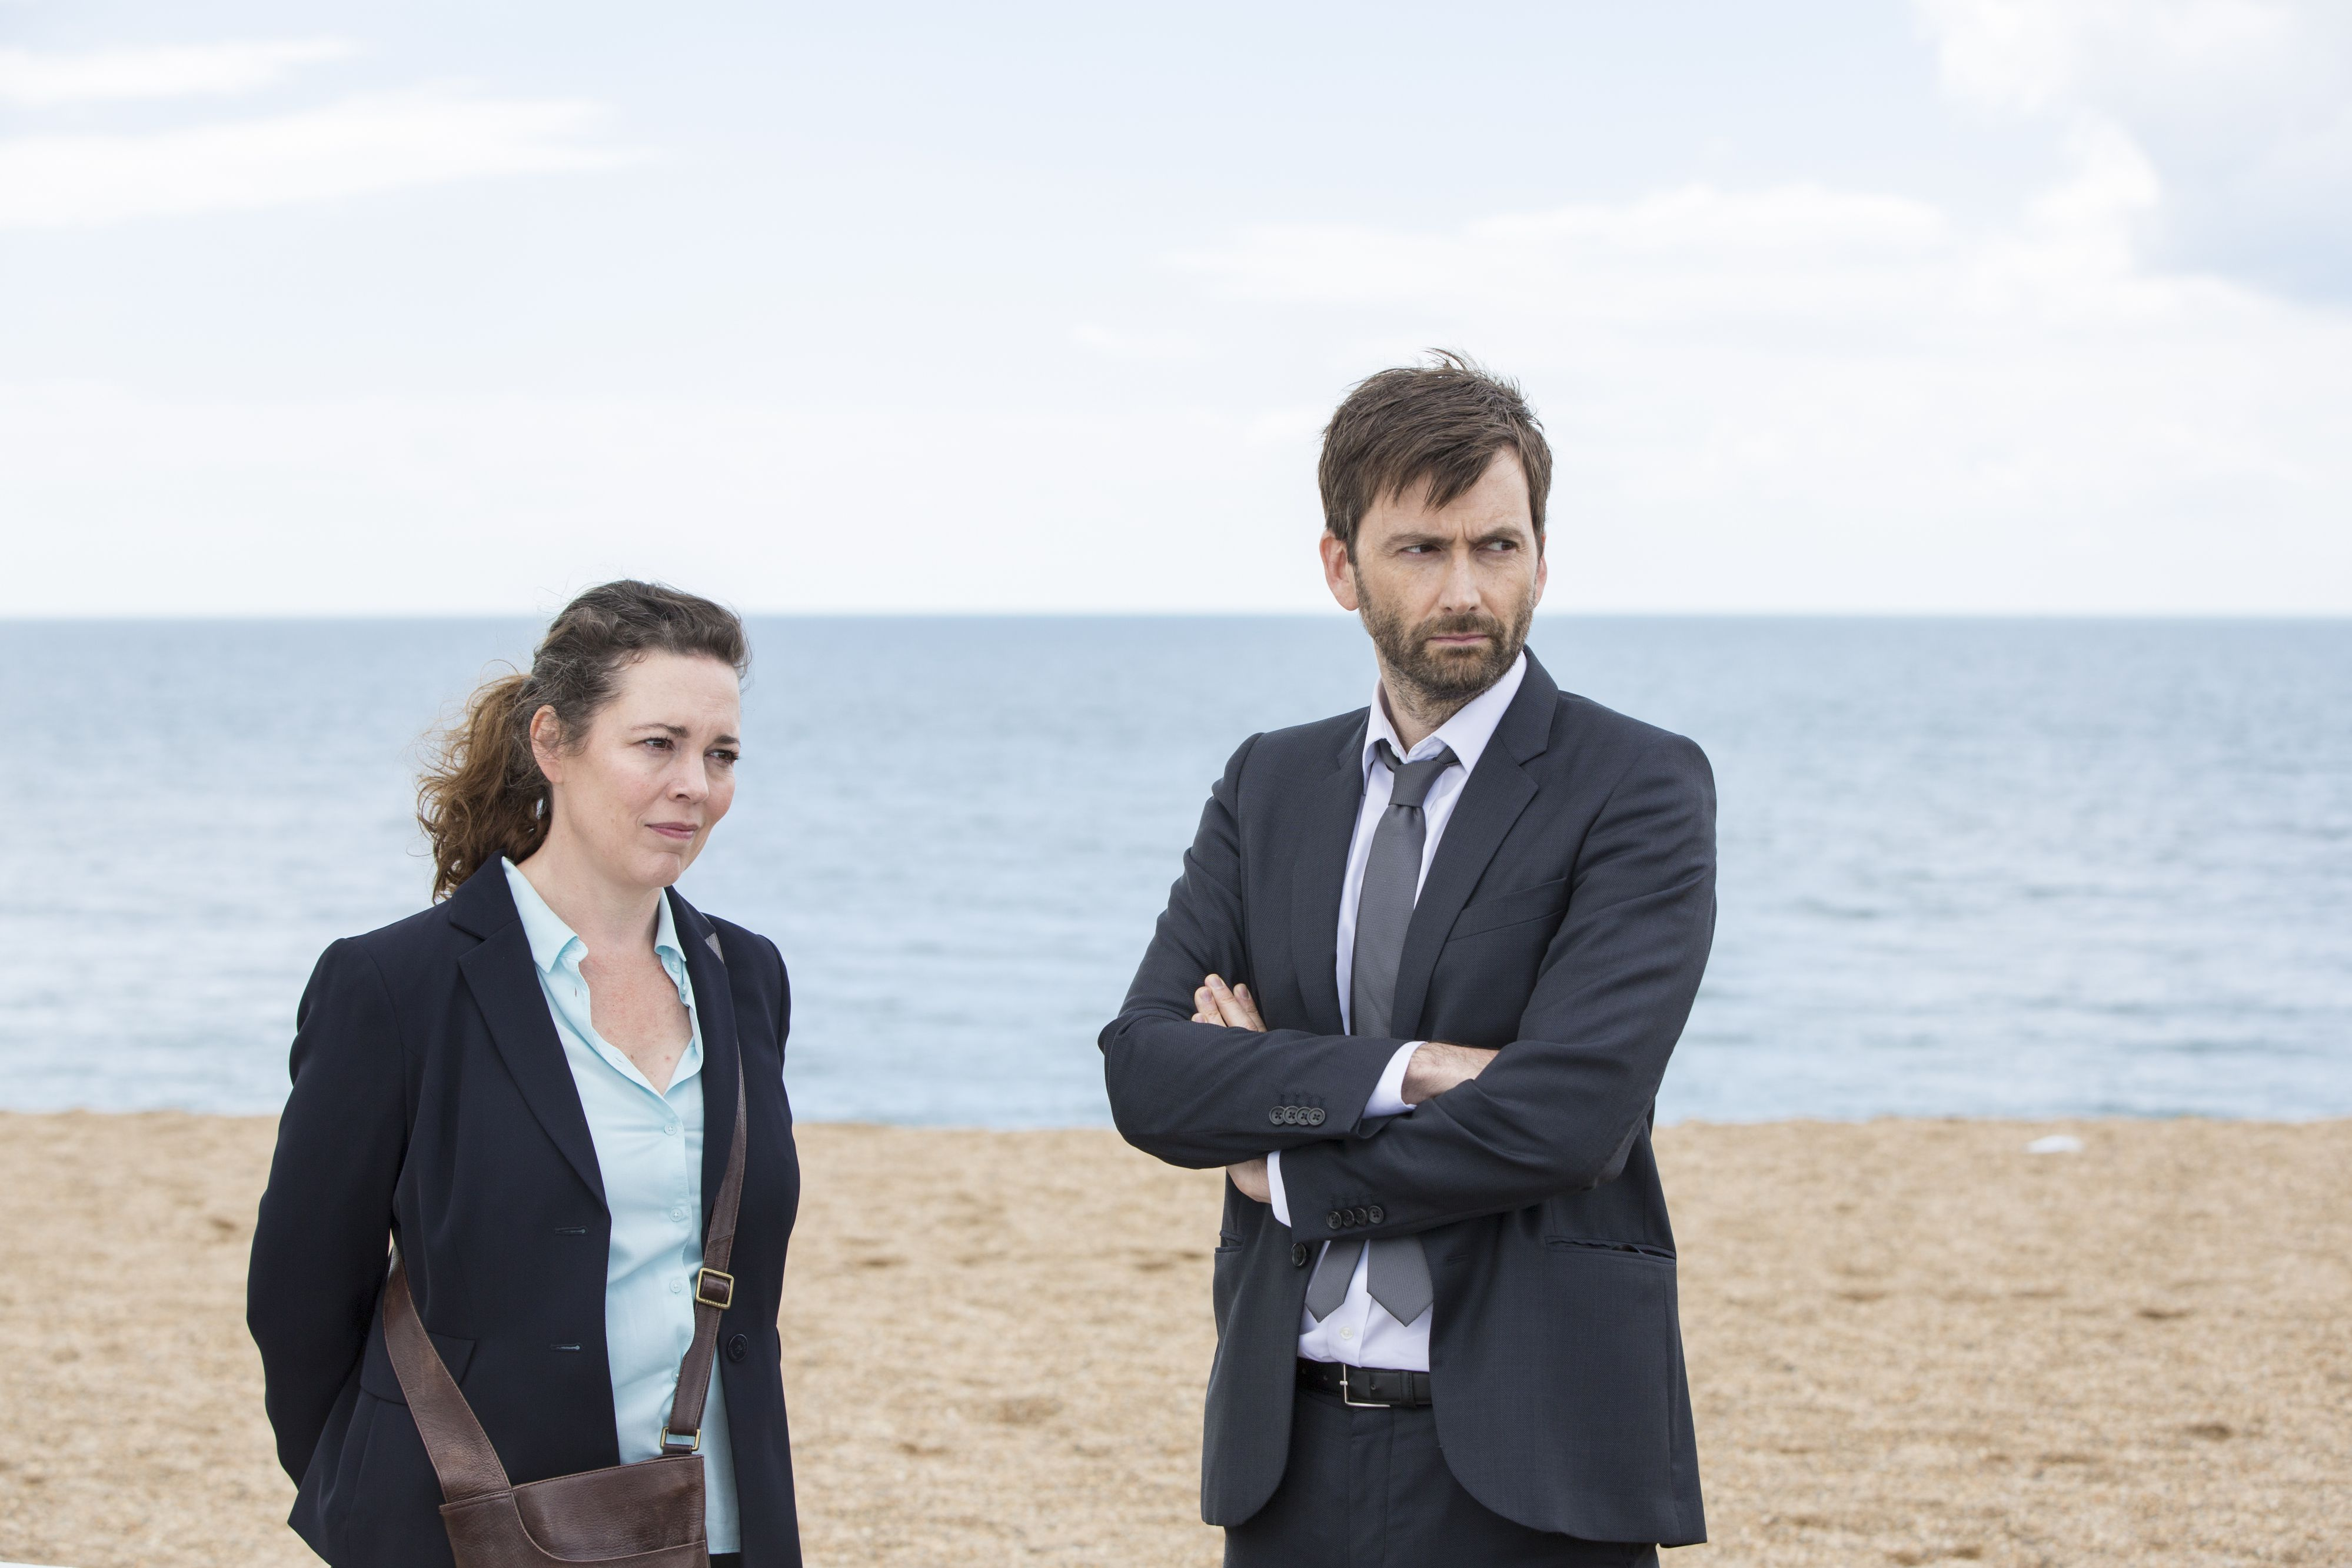 When does the final episode of Broadchurch air?